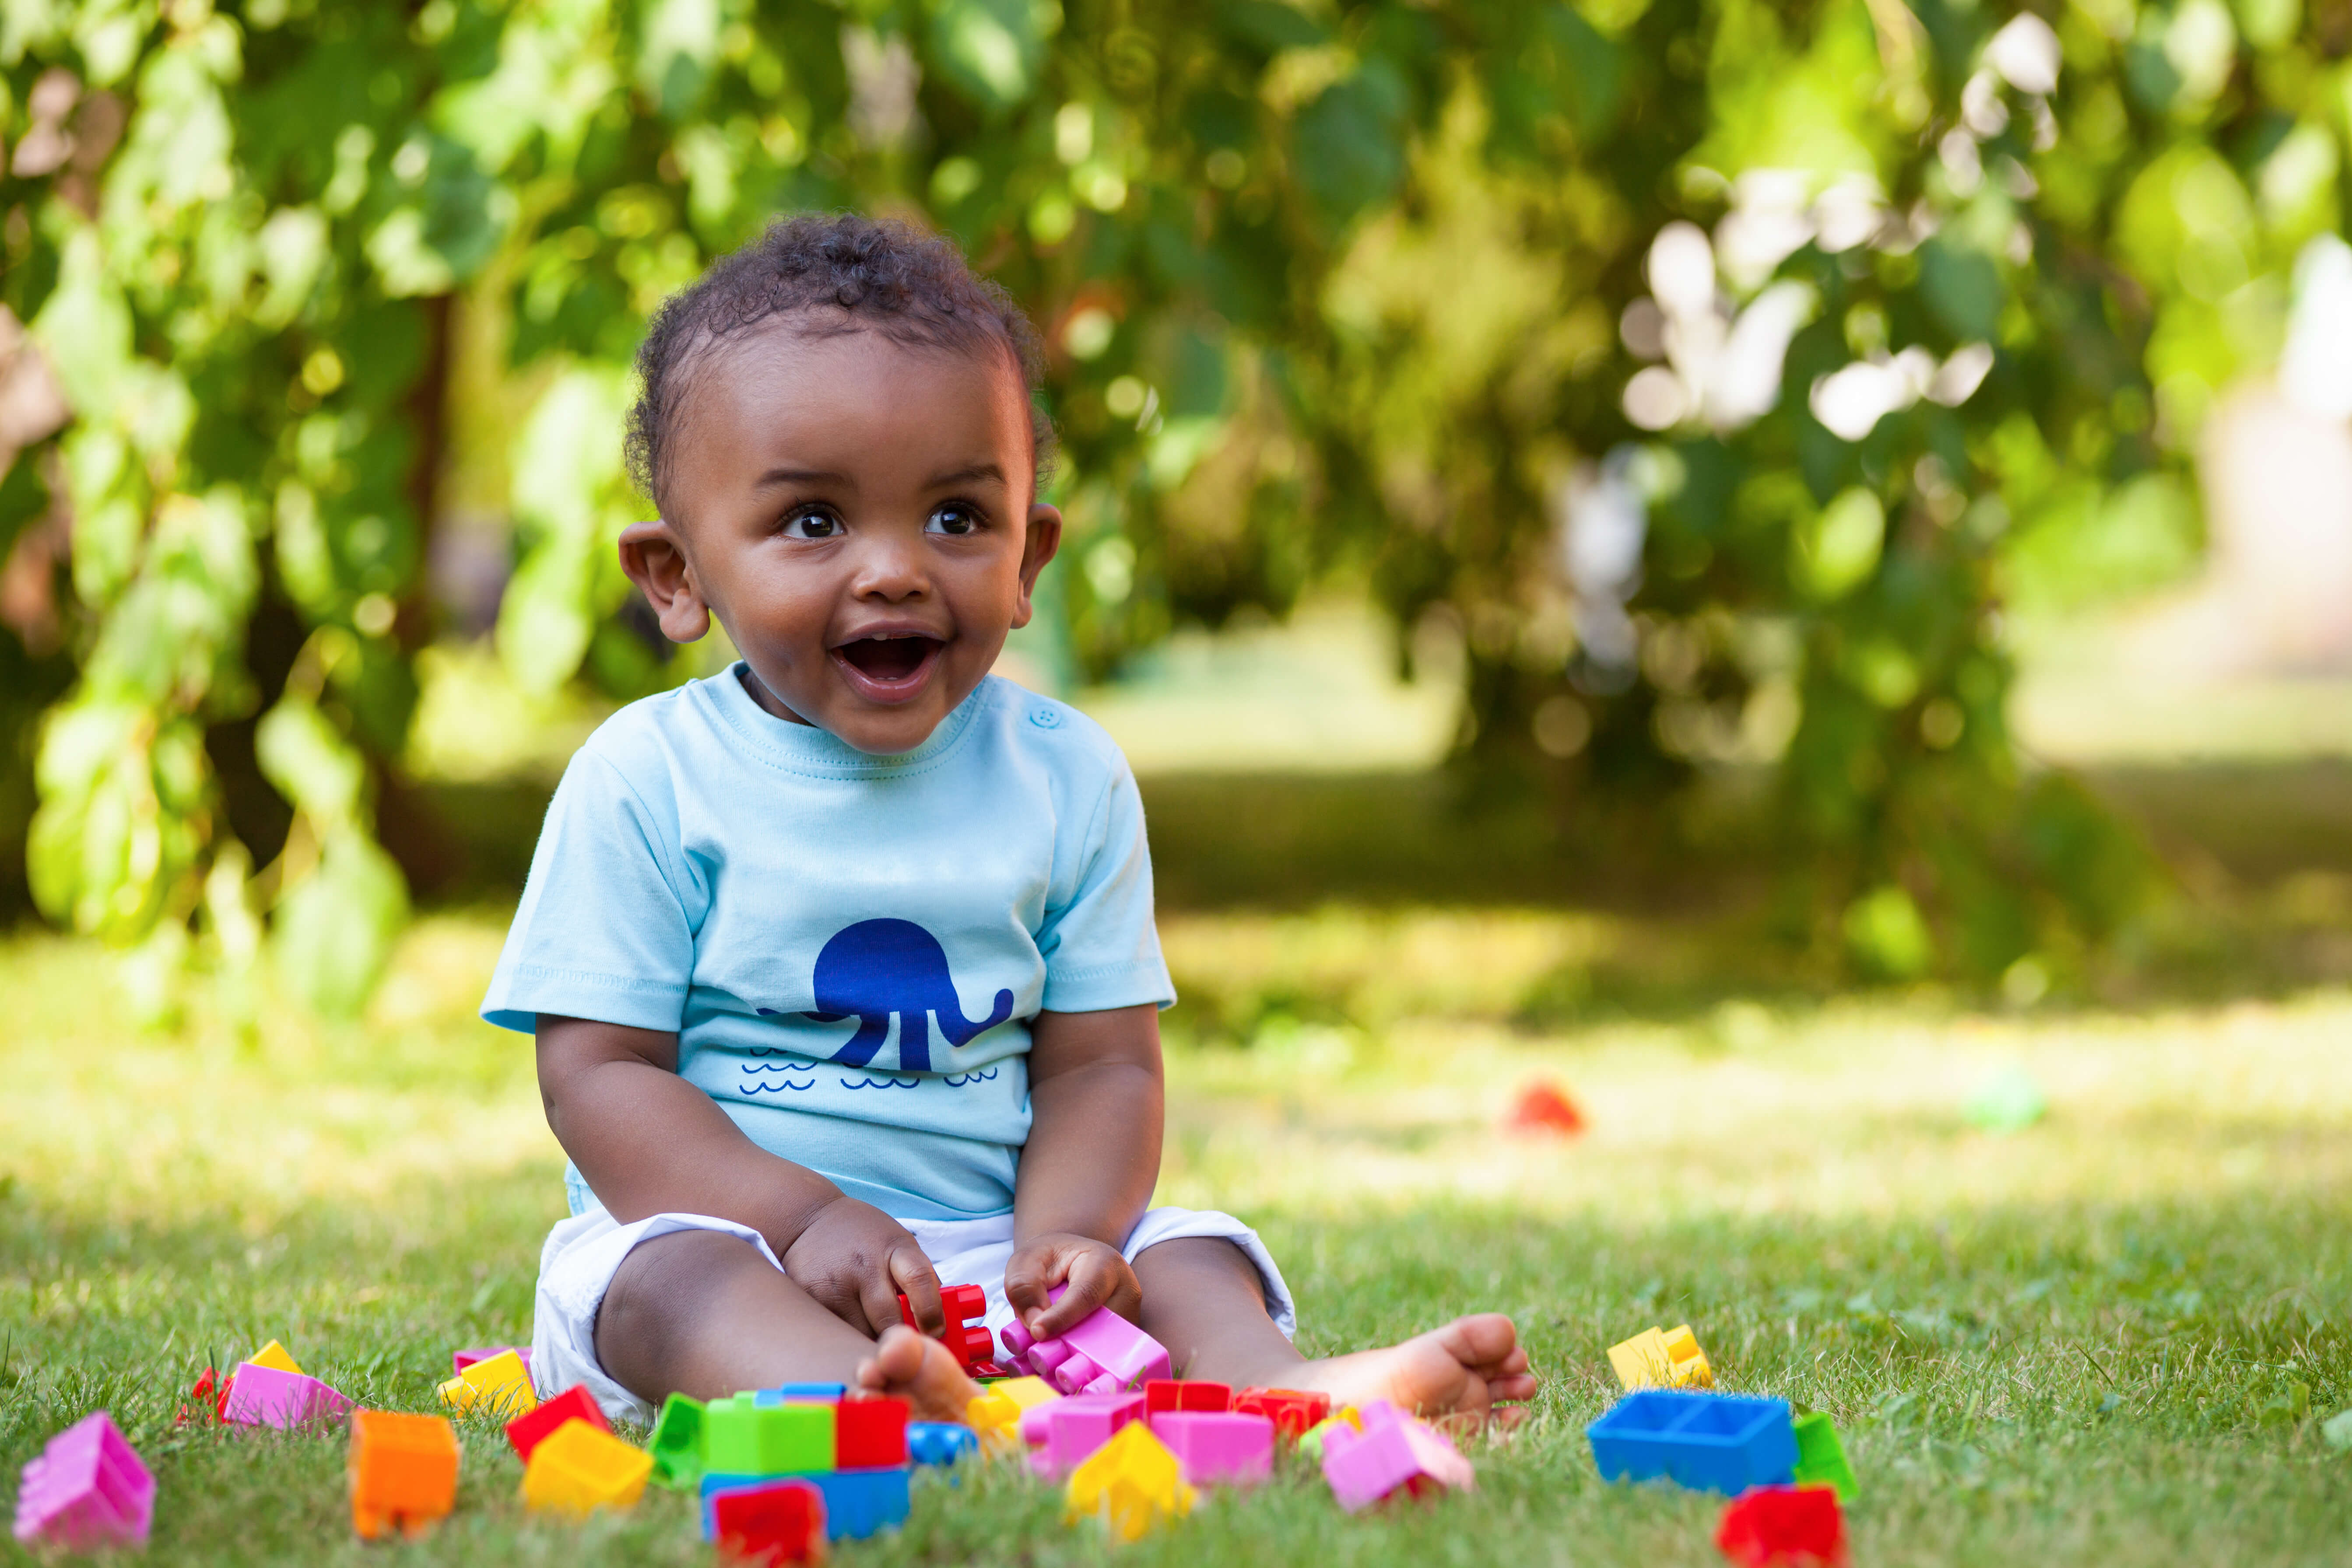 Baby playing with blocks in the grass